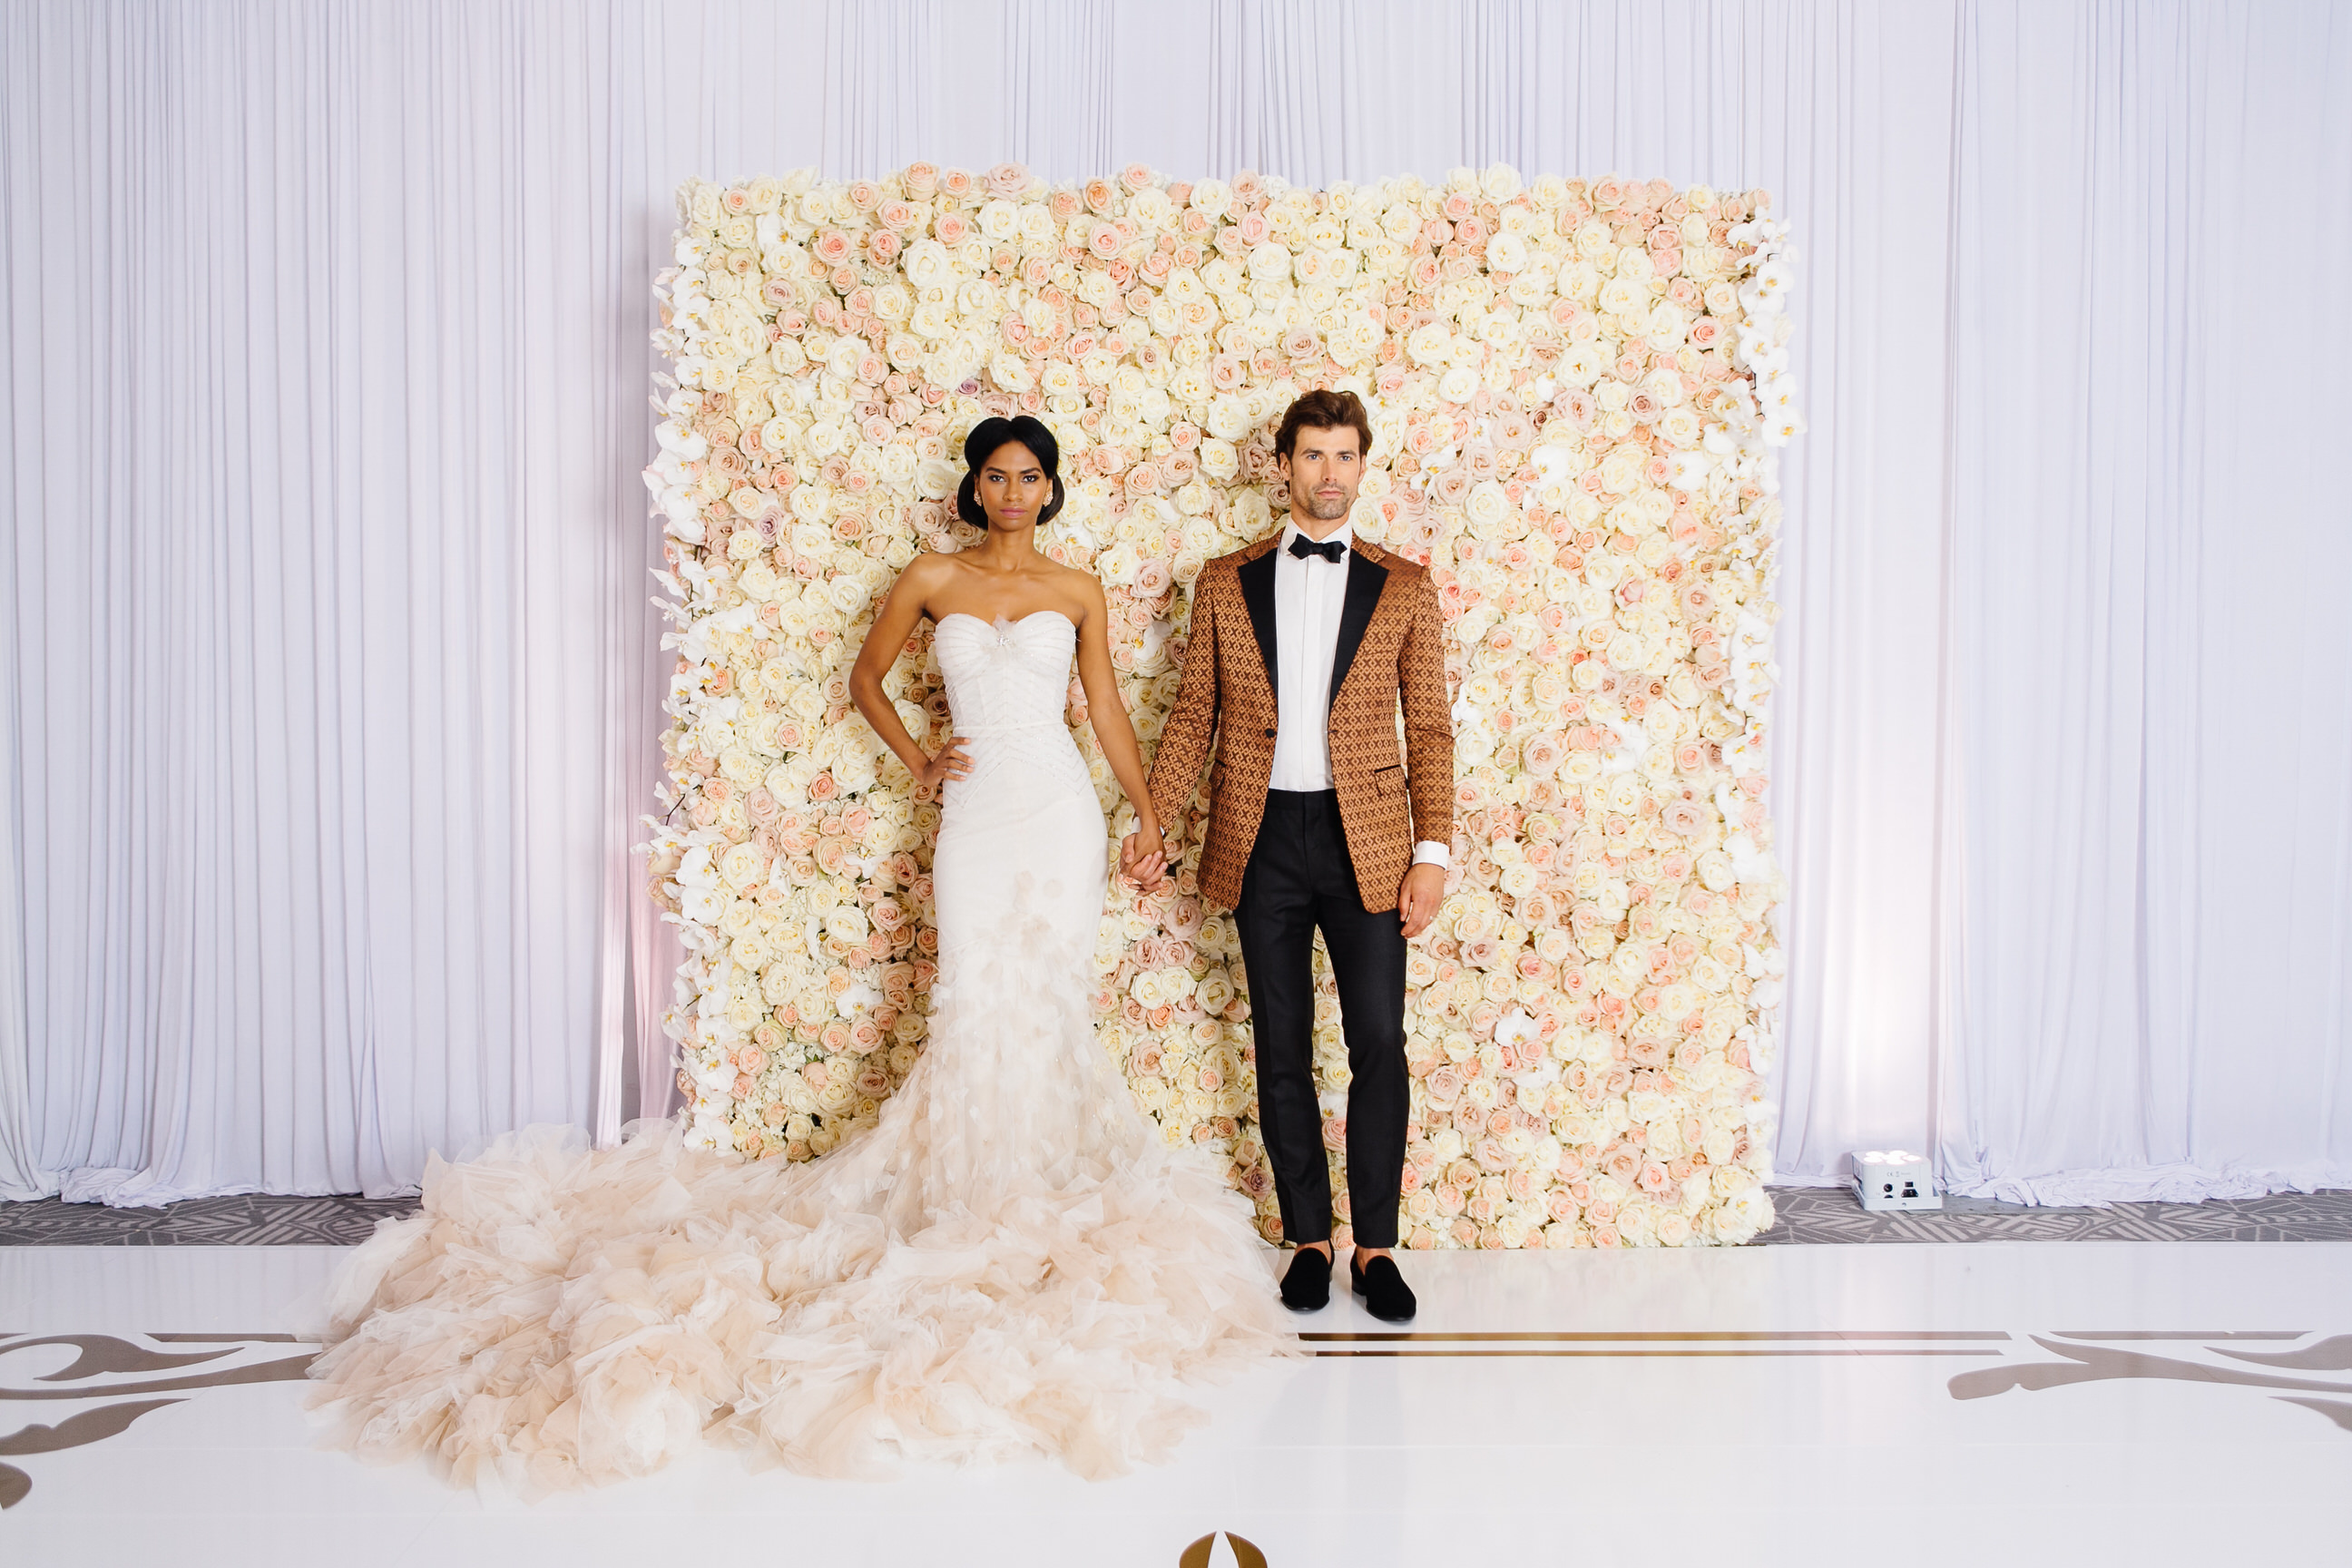 Bride In Wedding Dress Standing With Groom Front Of Flower Wall Ideas